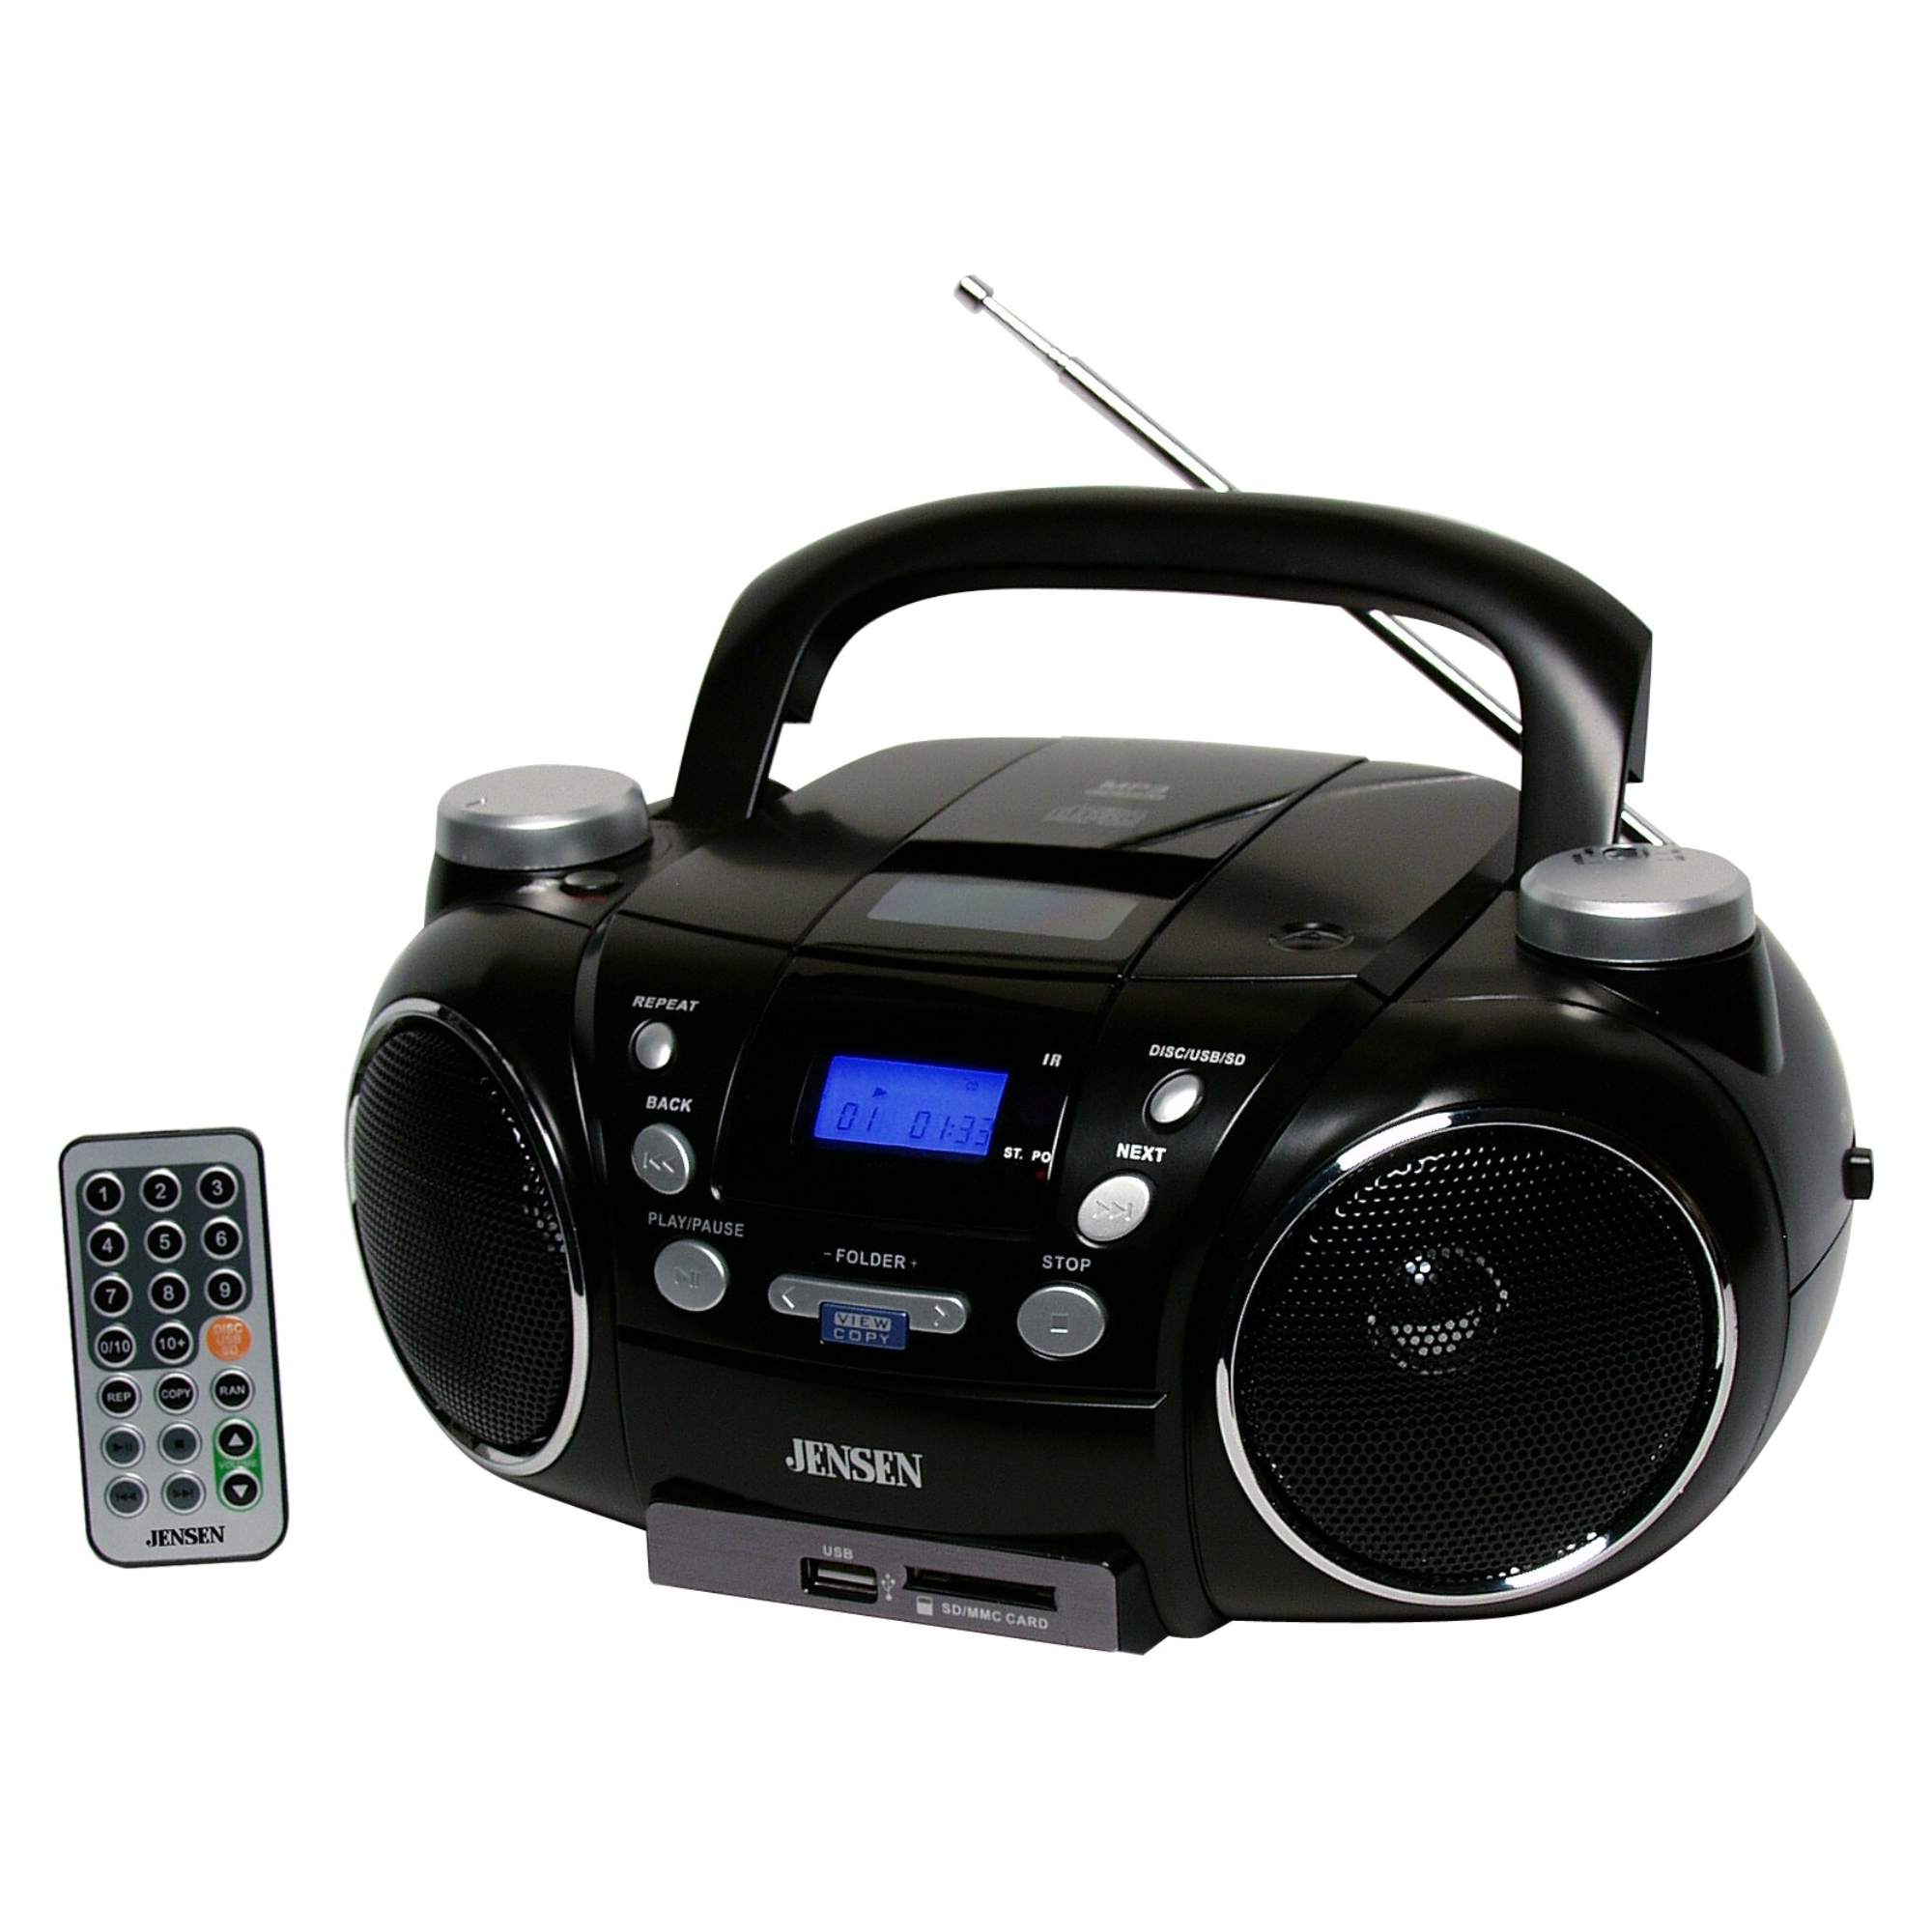 hight resolution of jensen cd 750 portable am fm stereo cd player with mp3 encoder player walmart com